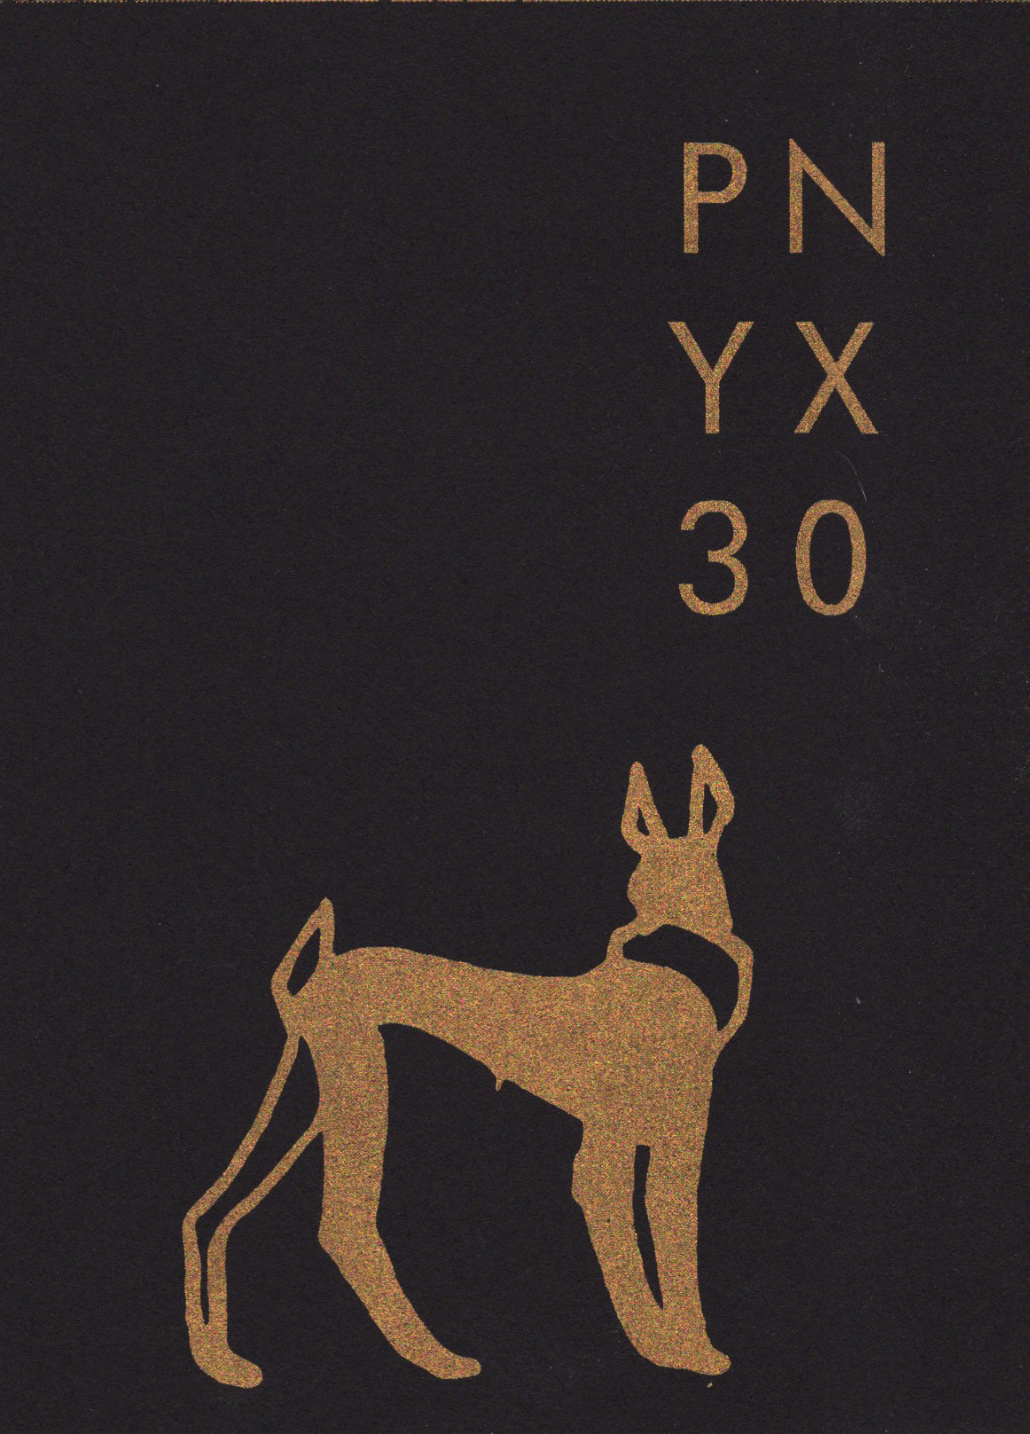 PNYX_30_front-pooch